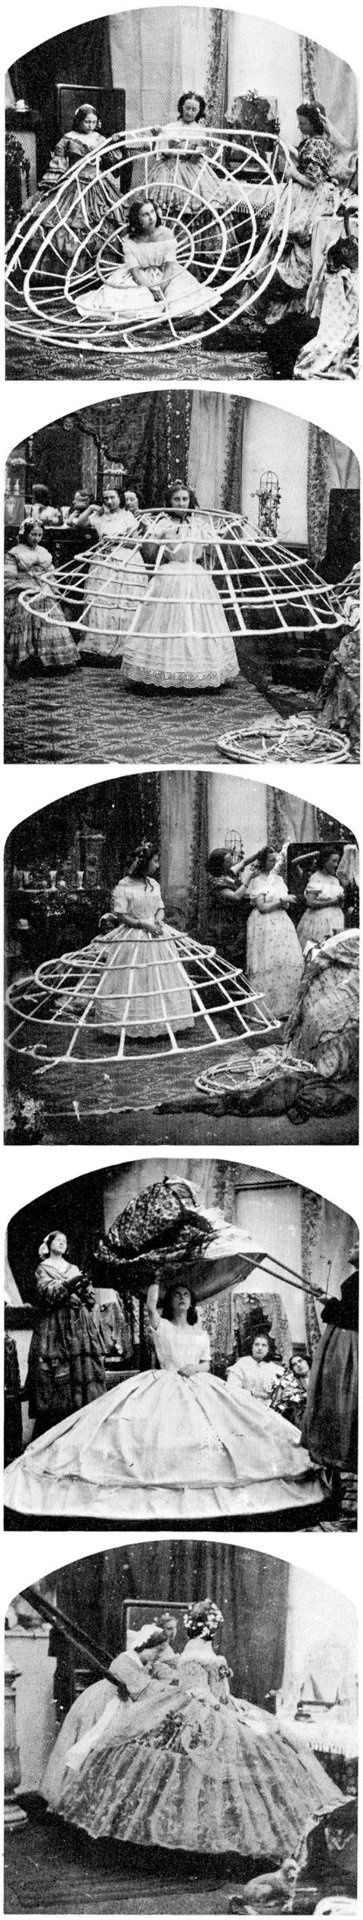 Putting on a Crinoline 1850-1860